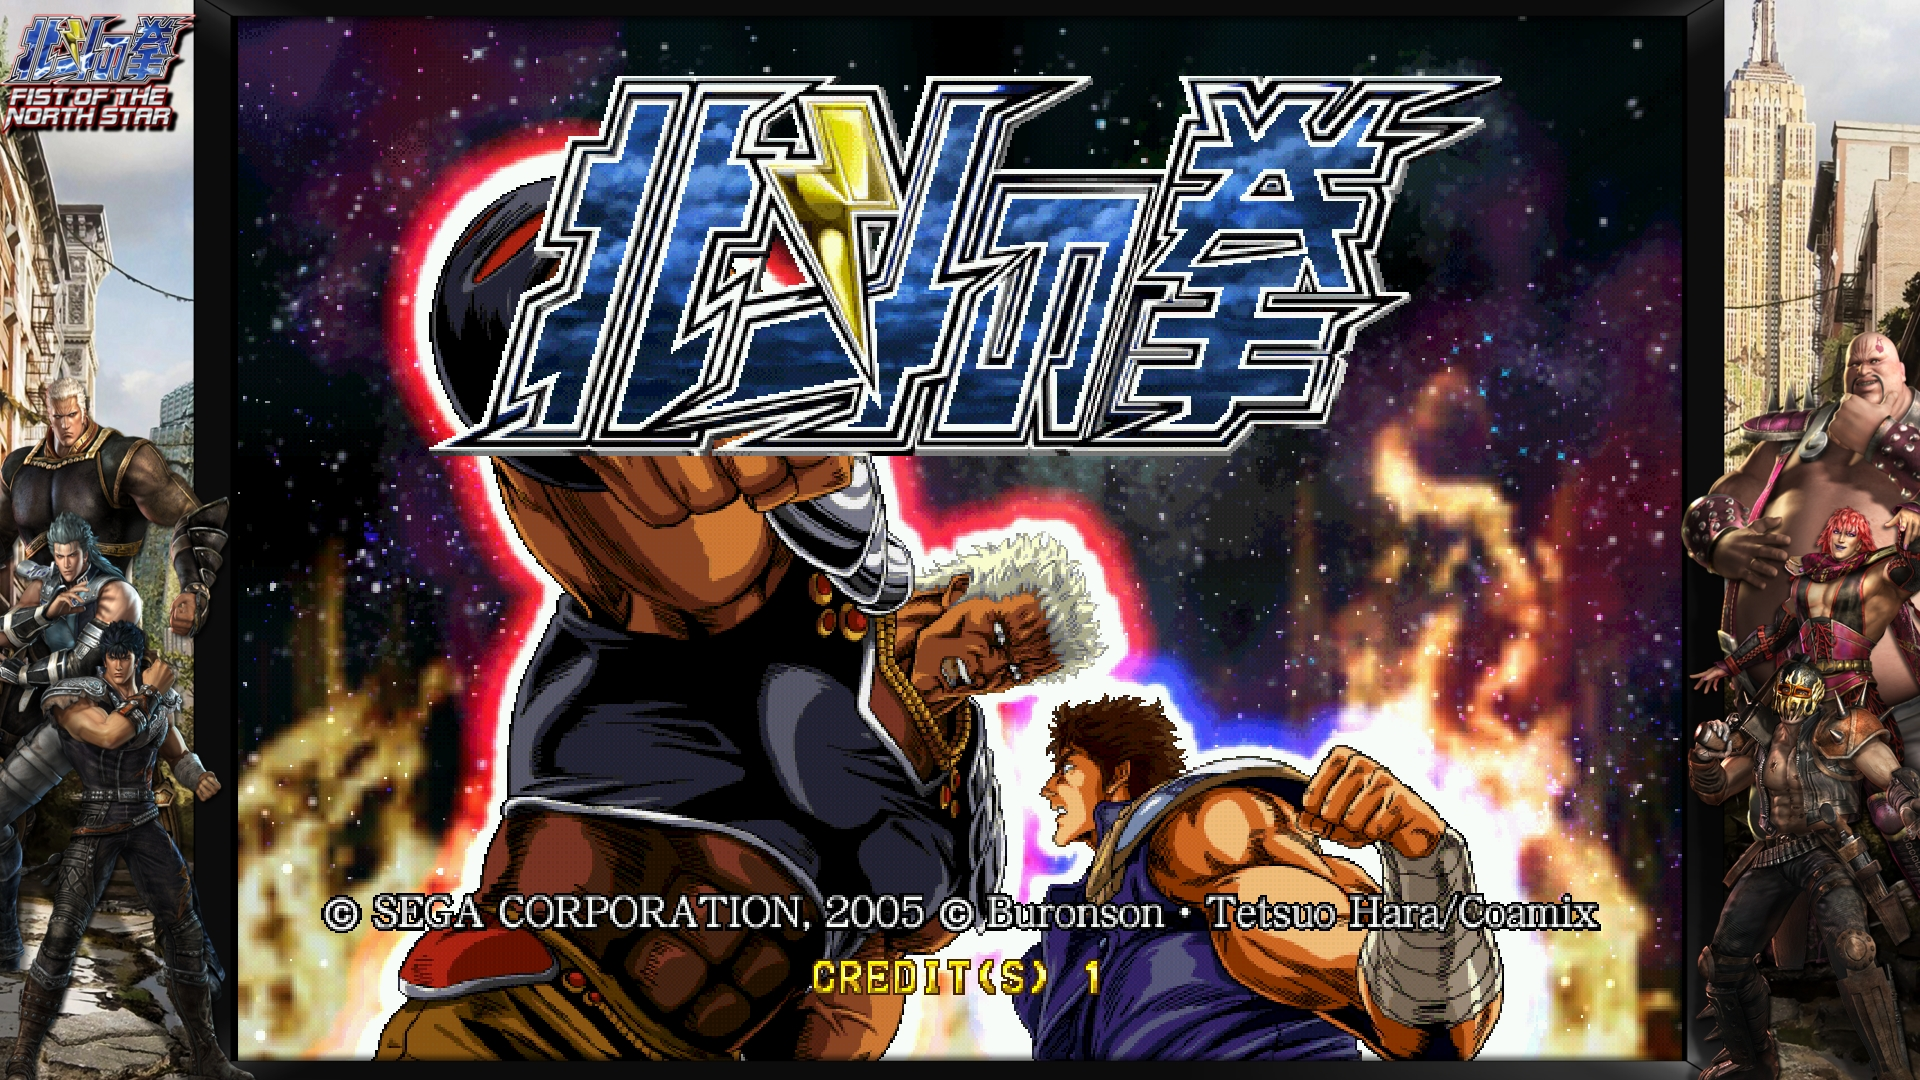 Fist of the north star atomiswave rom